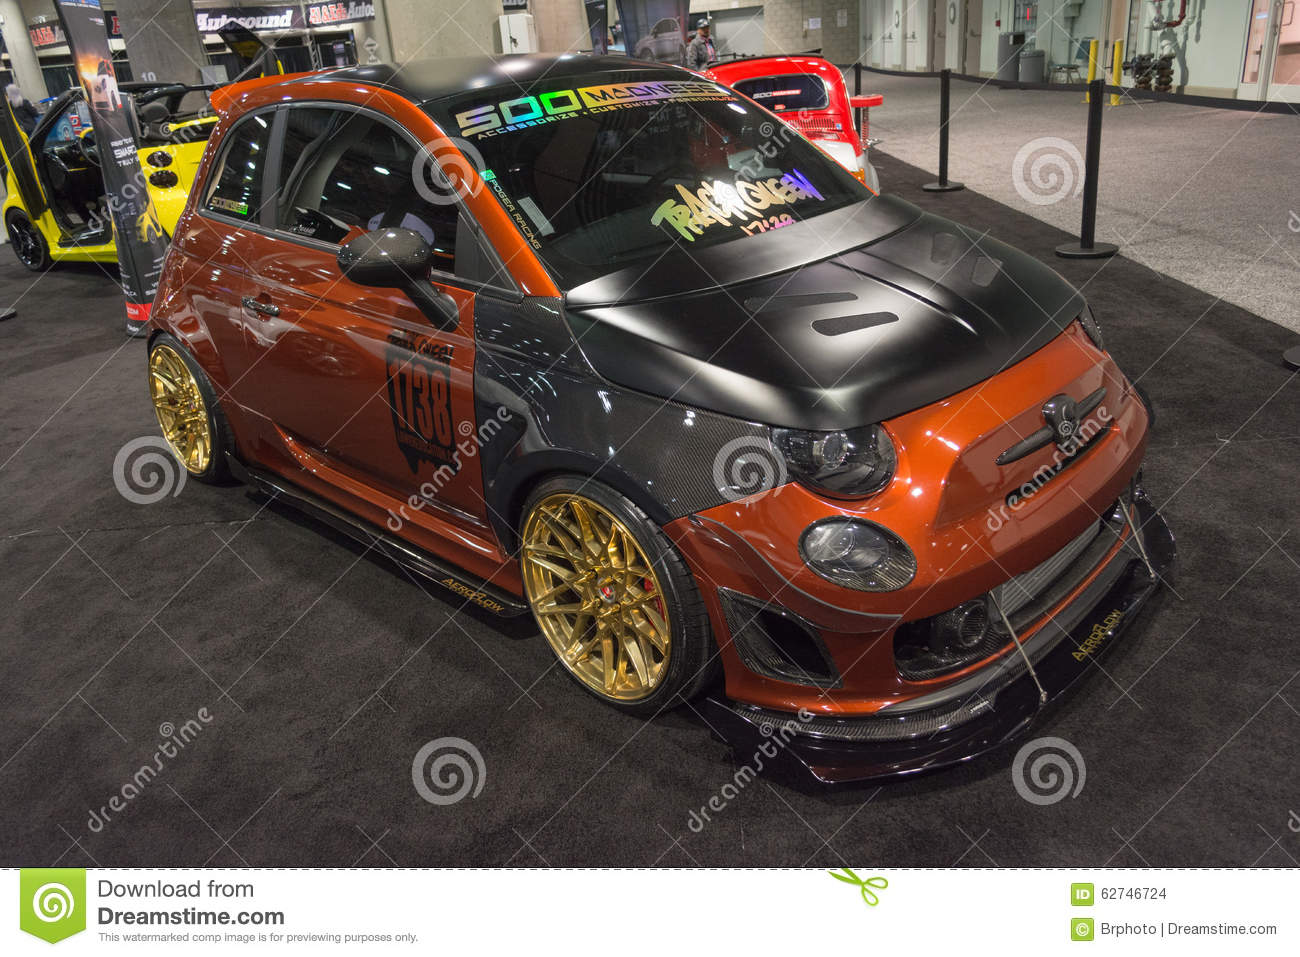 Fiat 500 Tuning On Display Editorial Stock Image Image Of Advanced